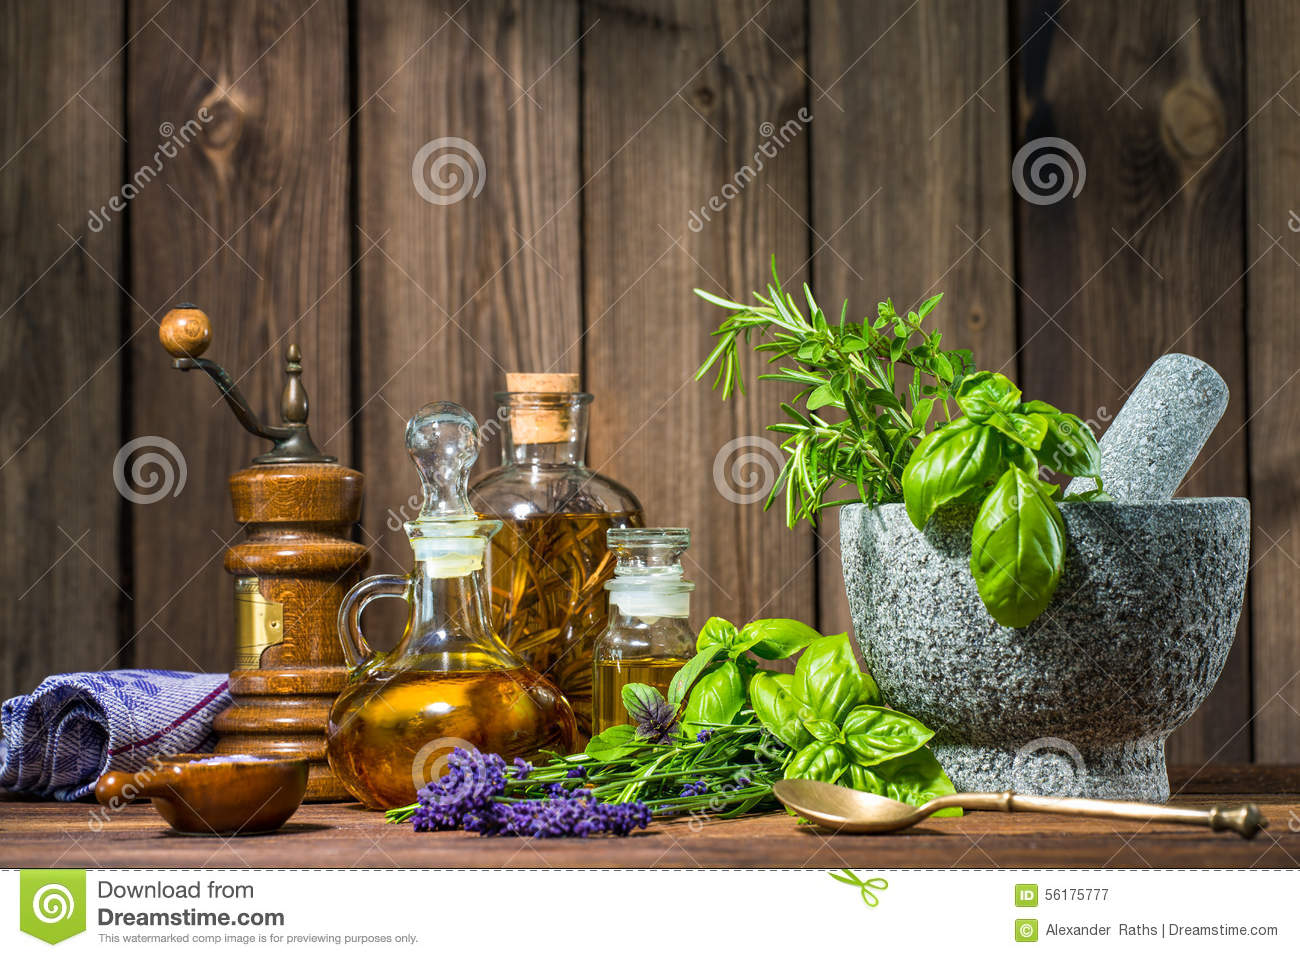 Mortar With Herbs And Oil On Wooden Table.. Full resolution  image, nominally Width 1300 Height 958 pixels, image with #81AF1C.